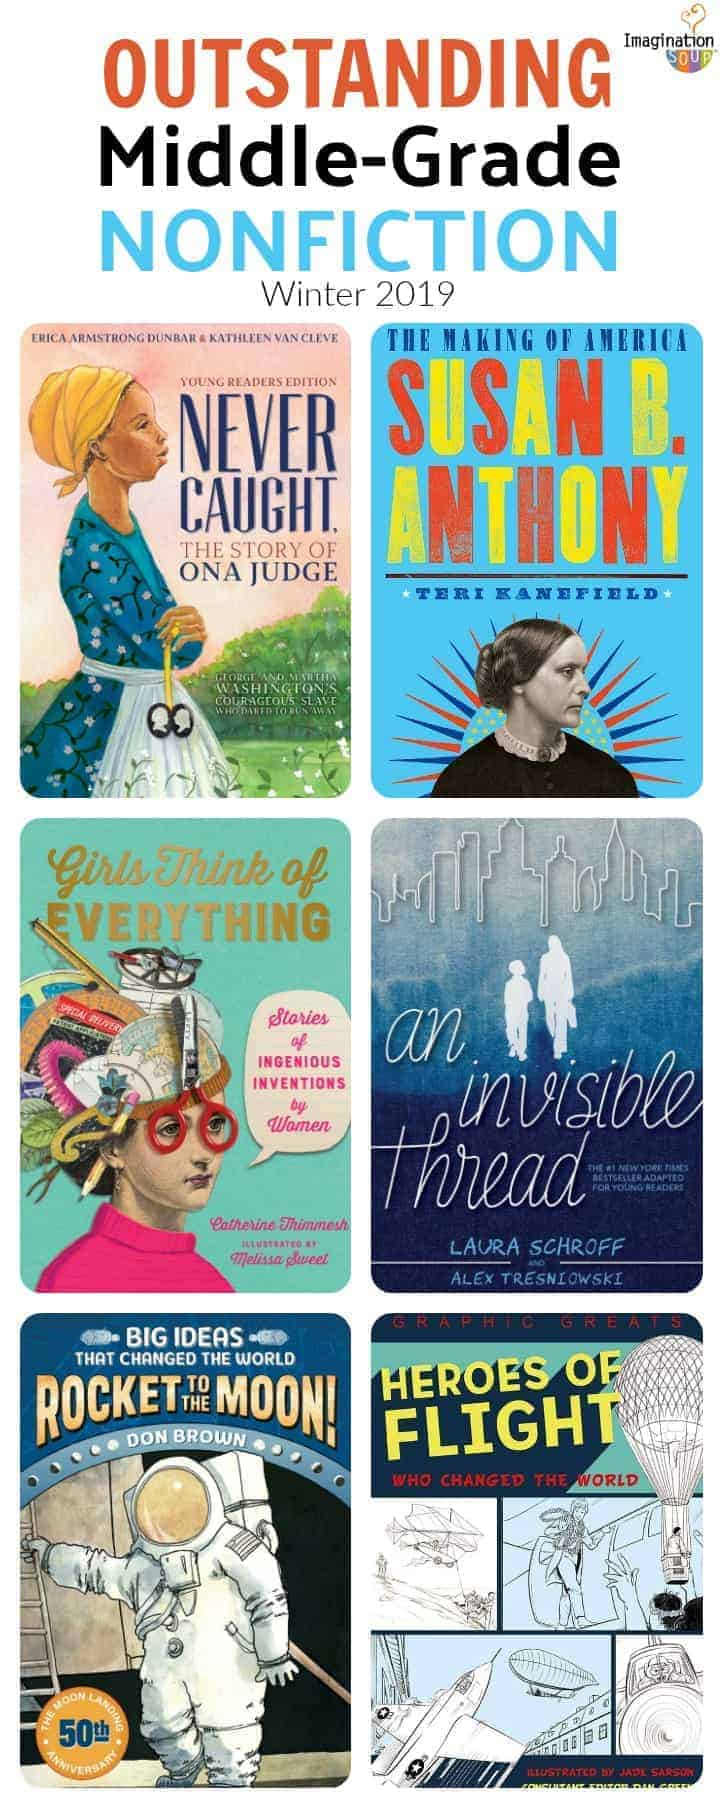 new middle grade nonfiction 2019